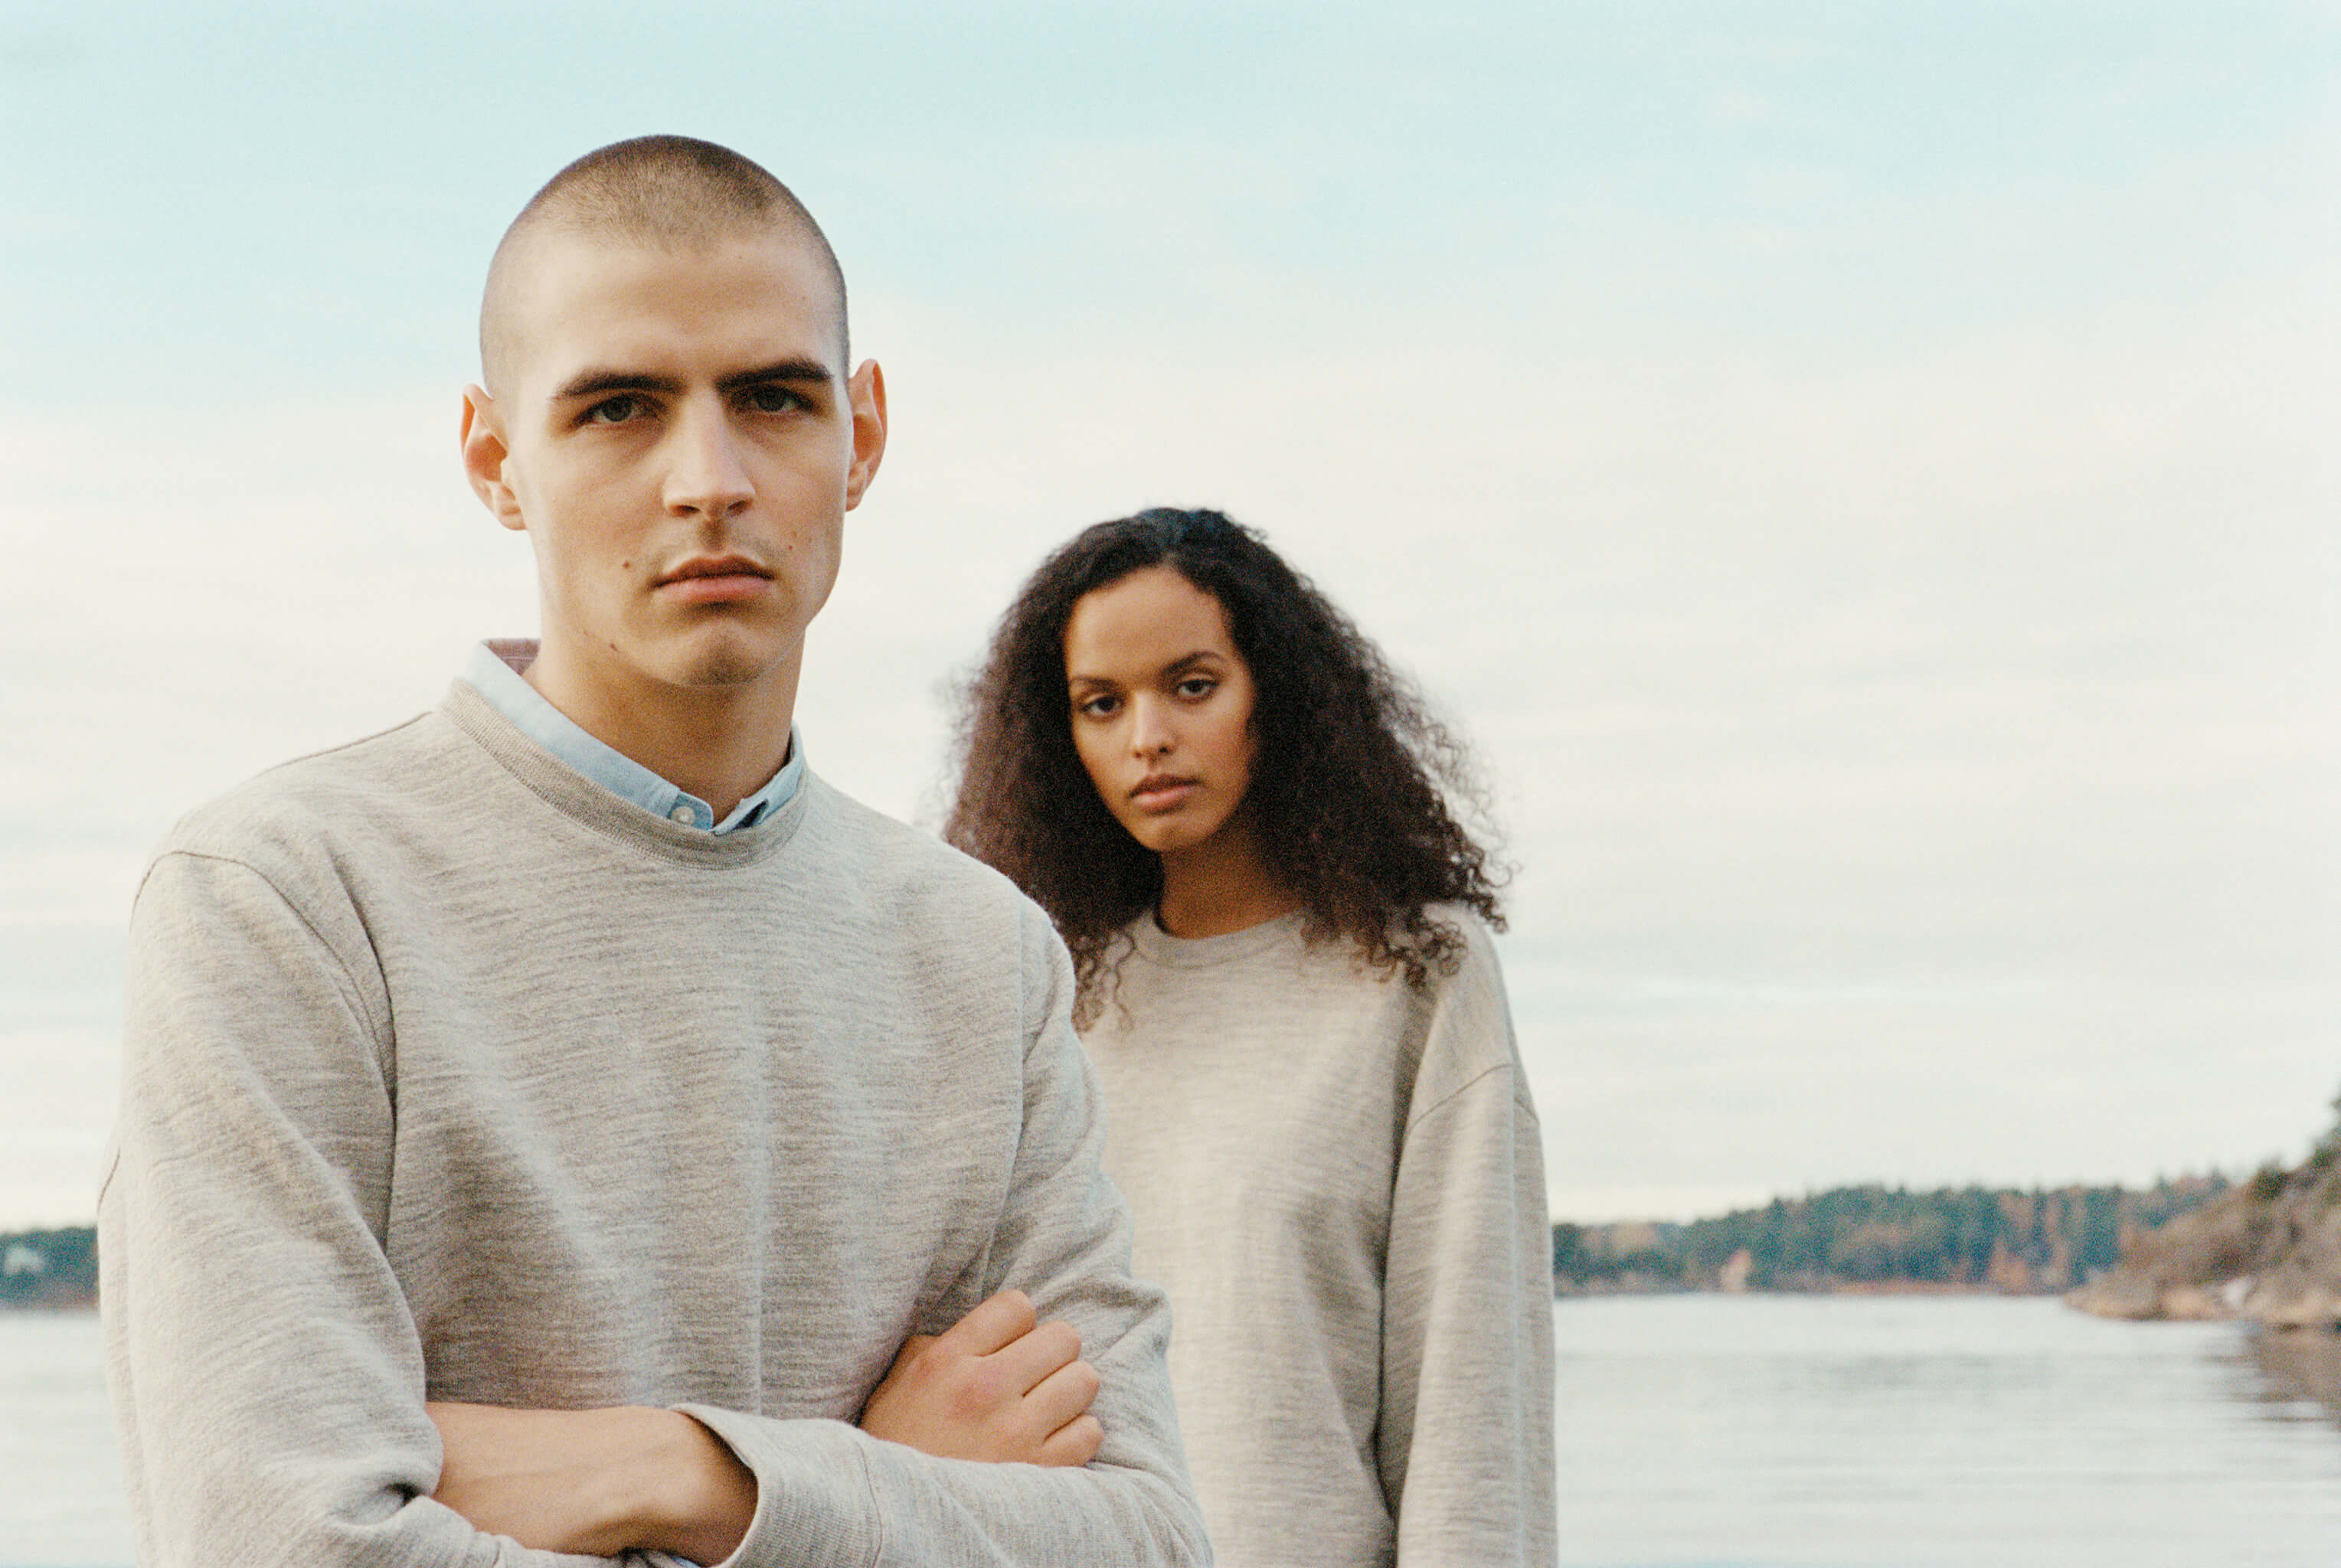 A shaved-head man of white Swedish descent a woman of Swedish-African descent in grey sweatshirts are standing by the Stockholm archipelago, looking at the viewer